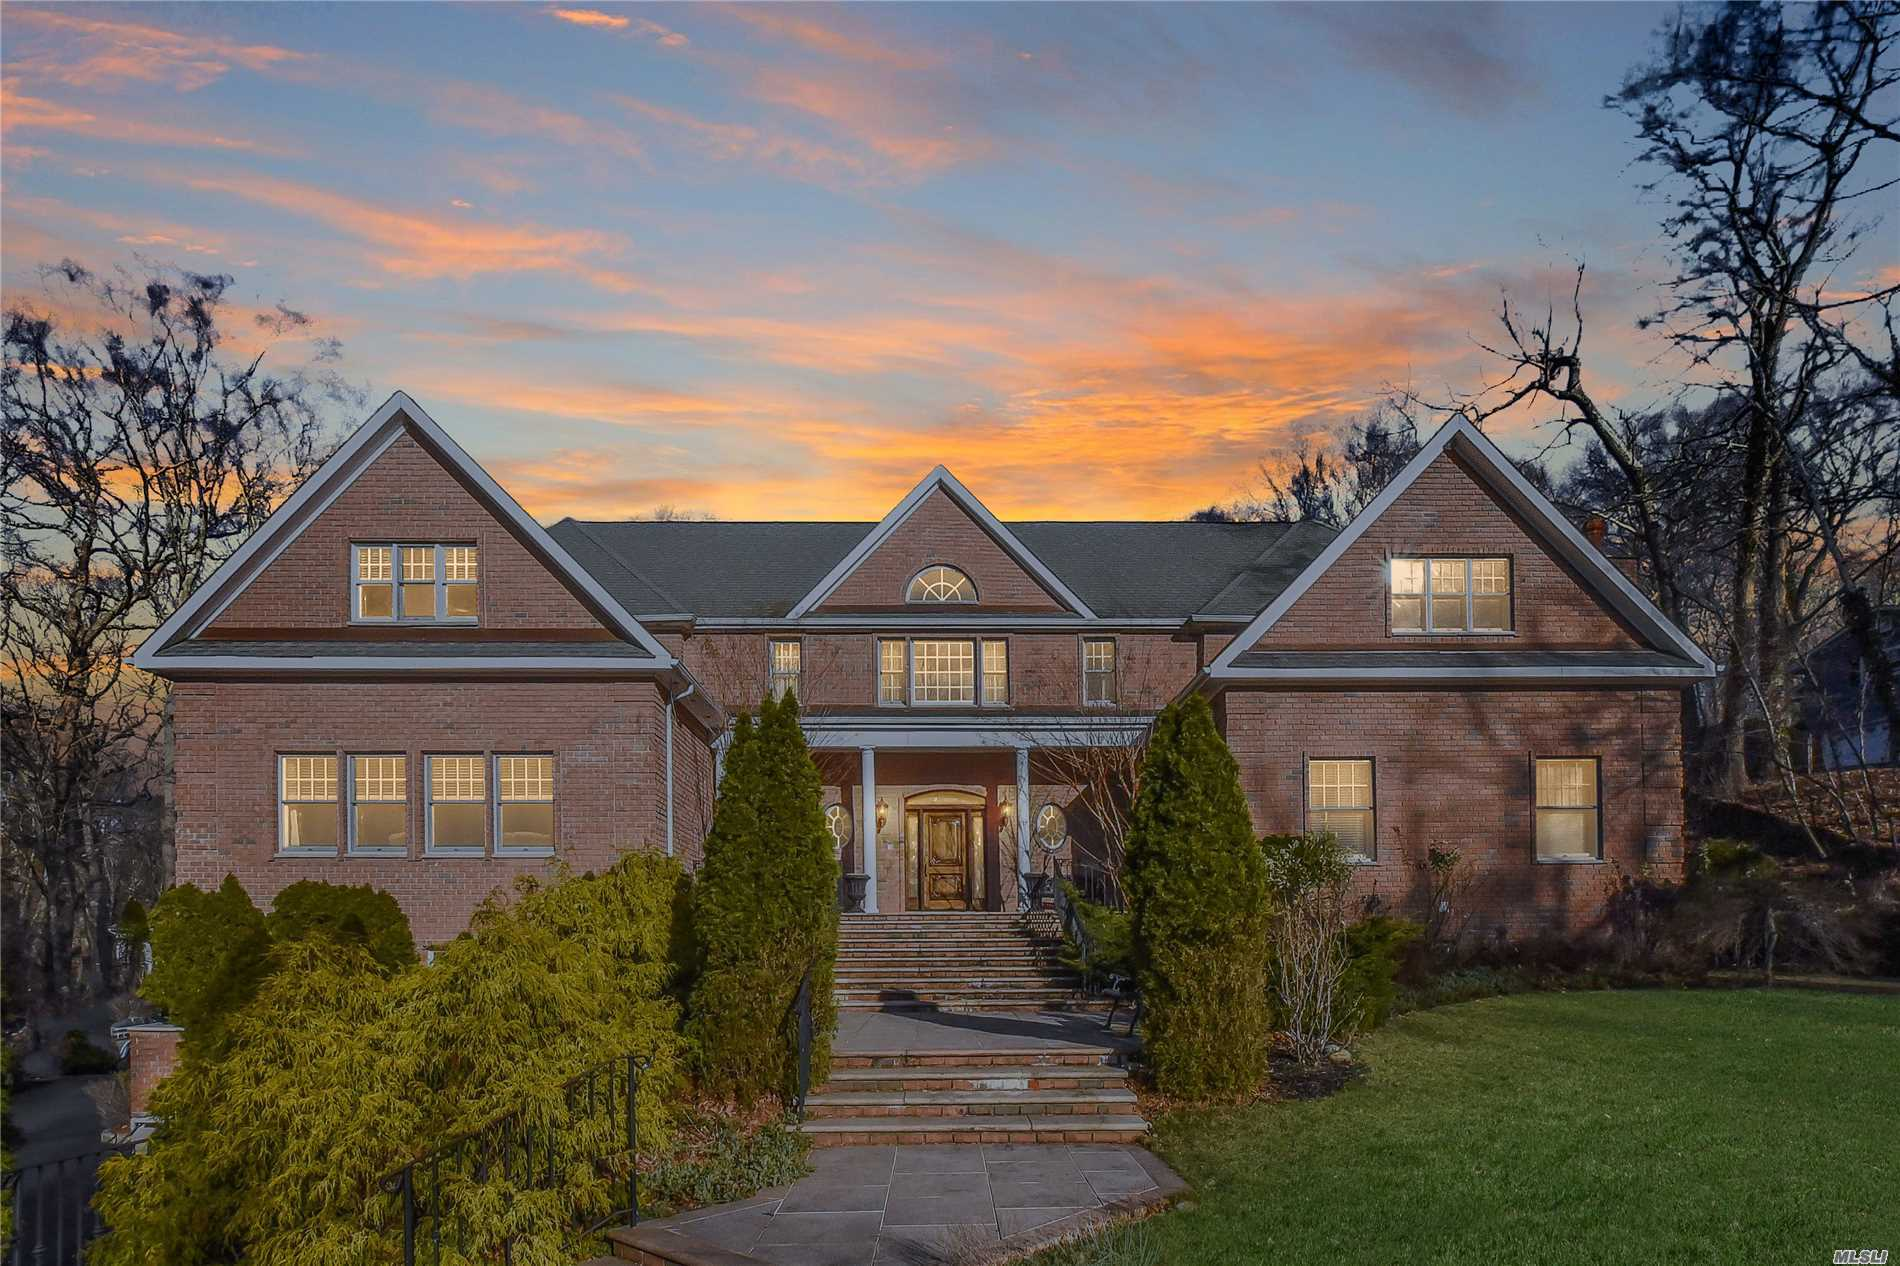 This 5800 Sf All Brick Designer Showplace Is Set Upon 2 Acres Across From Stony Brook Harbor. Winter Water Views Can Be Enjoyed Throughout This Beauty. Among Its Obvious Custom Design, You Will Find Attention To Detail At Every Turn. Come Inside And Experience Its 10Ft Ceilings, Mahogany Flrs, Gourmet Kit W/Granite Countertops, Arched Doorways, 1st Fl Master Suite Overlooking Igp And So Much More. Relax By The Fp, Entertain Both Inside & Out. Experience The Luxury That Awaits Within.